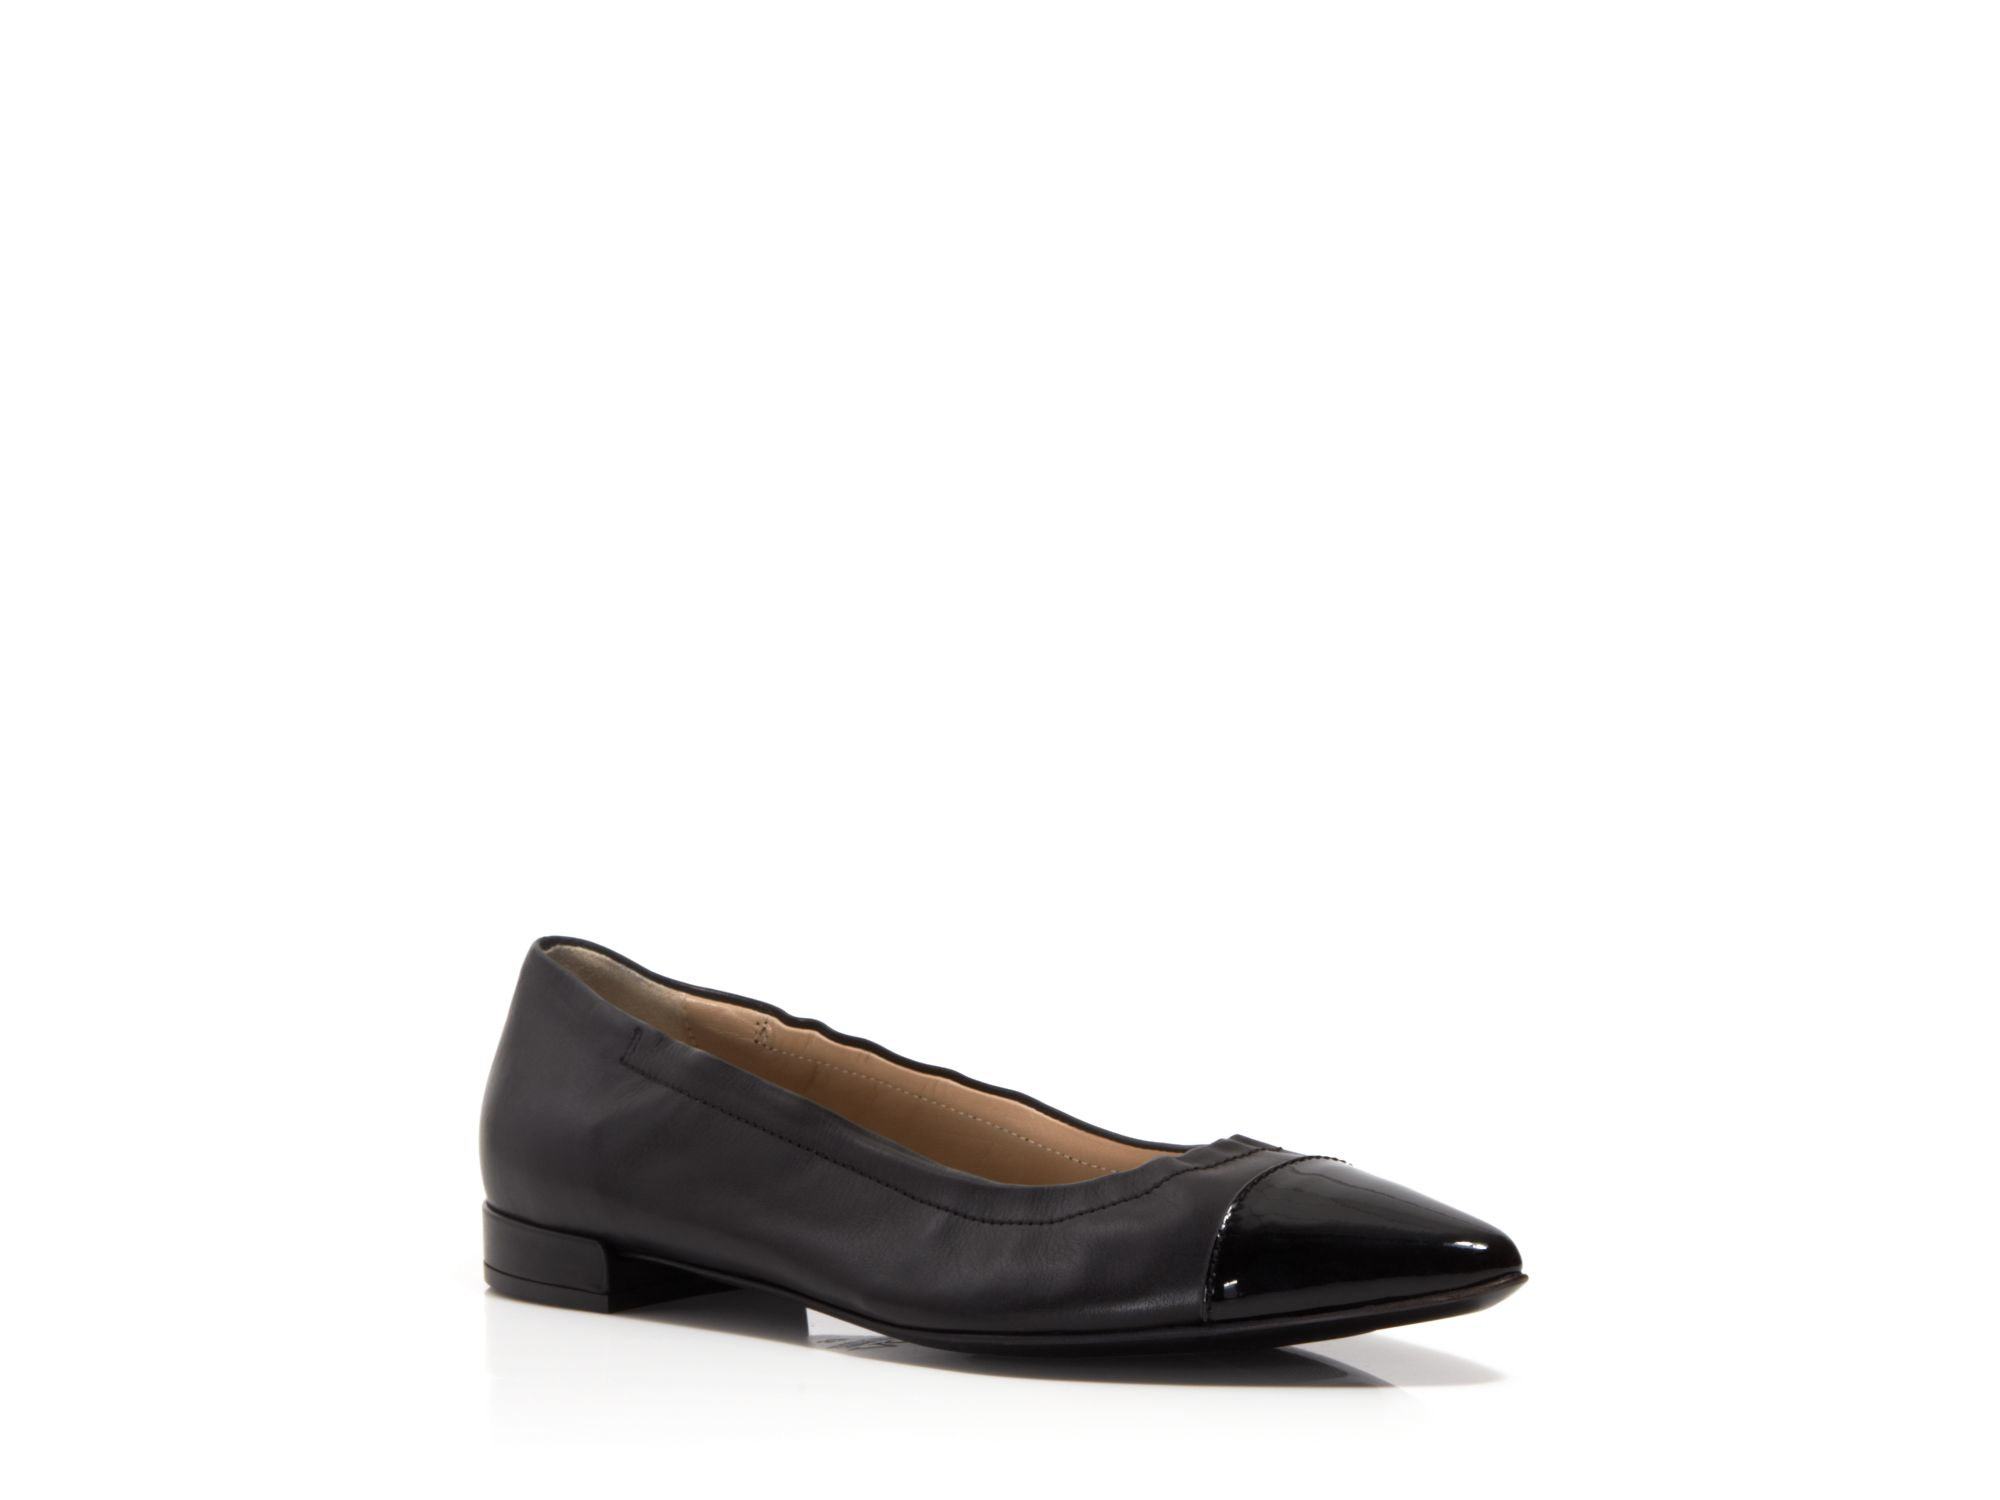 100% guaranteed for sale 2014 unisex Attilio Giusti Leombruni Leather Cap-Toe Flats outlet latest collections 7C4GqB